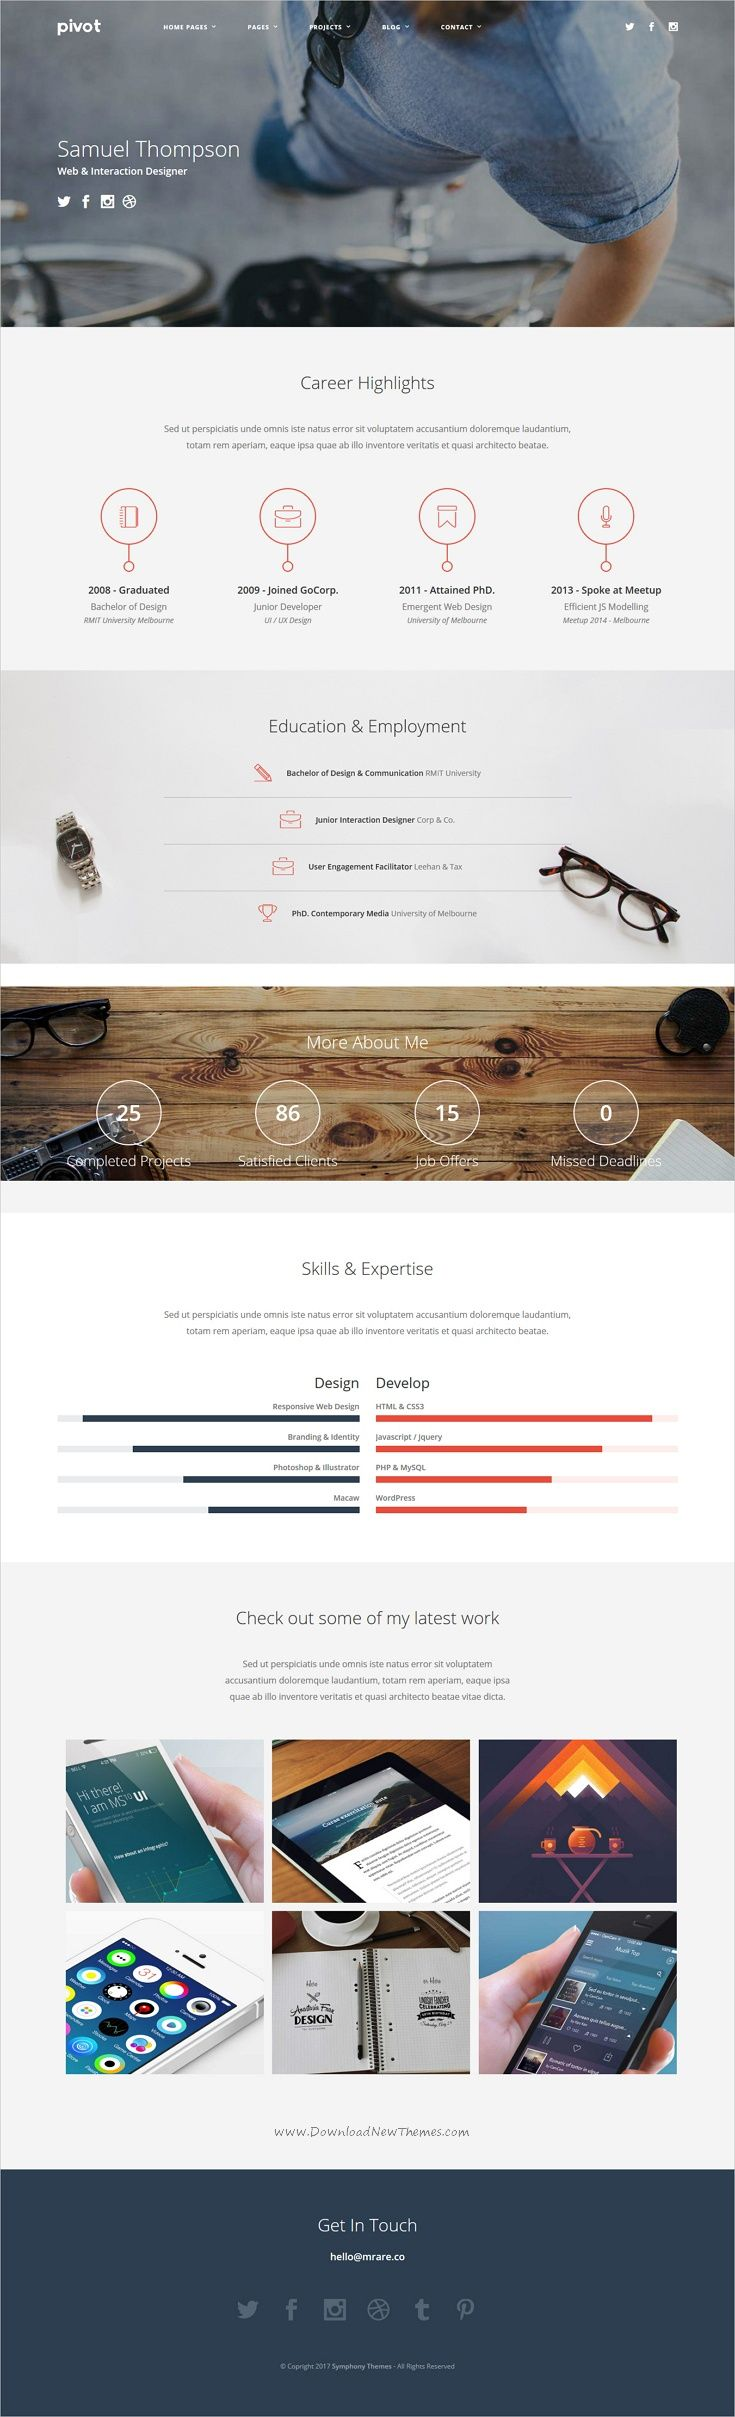 resume builder college students%0A Pivot  Drupal   Multipurpose Theme with Paragraph Builder